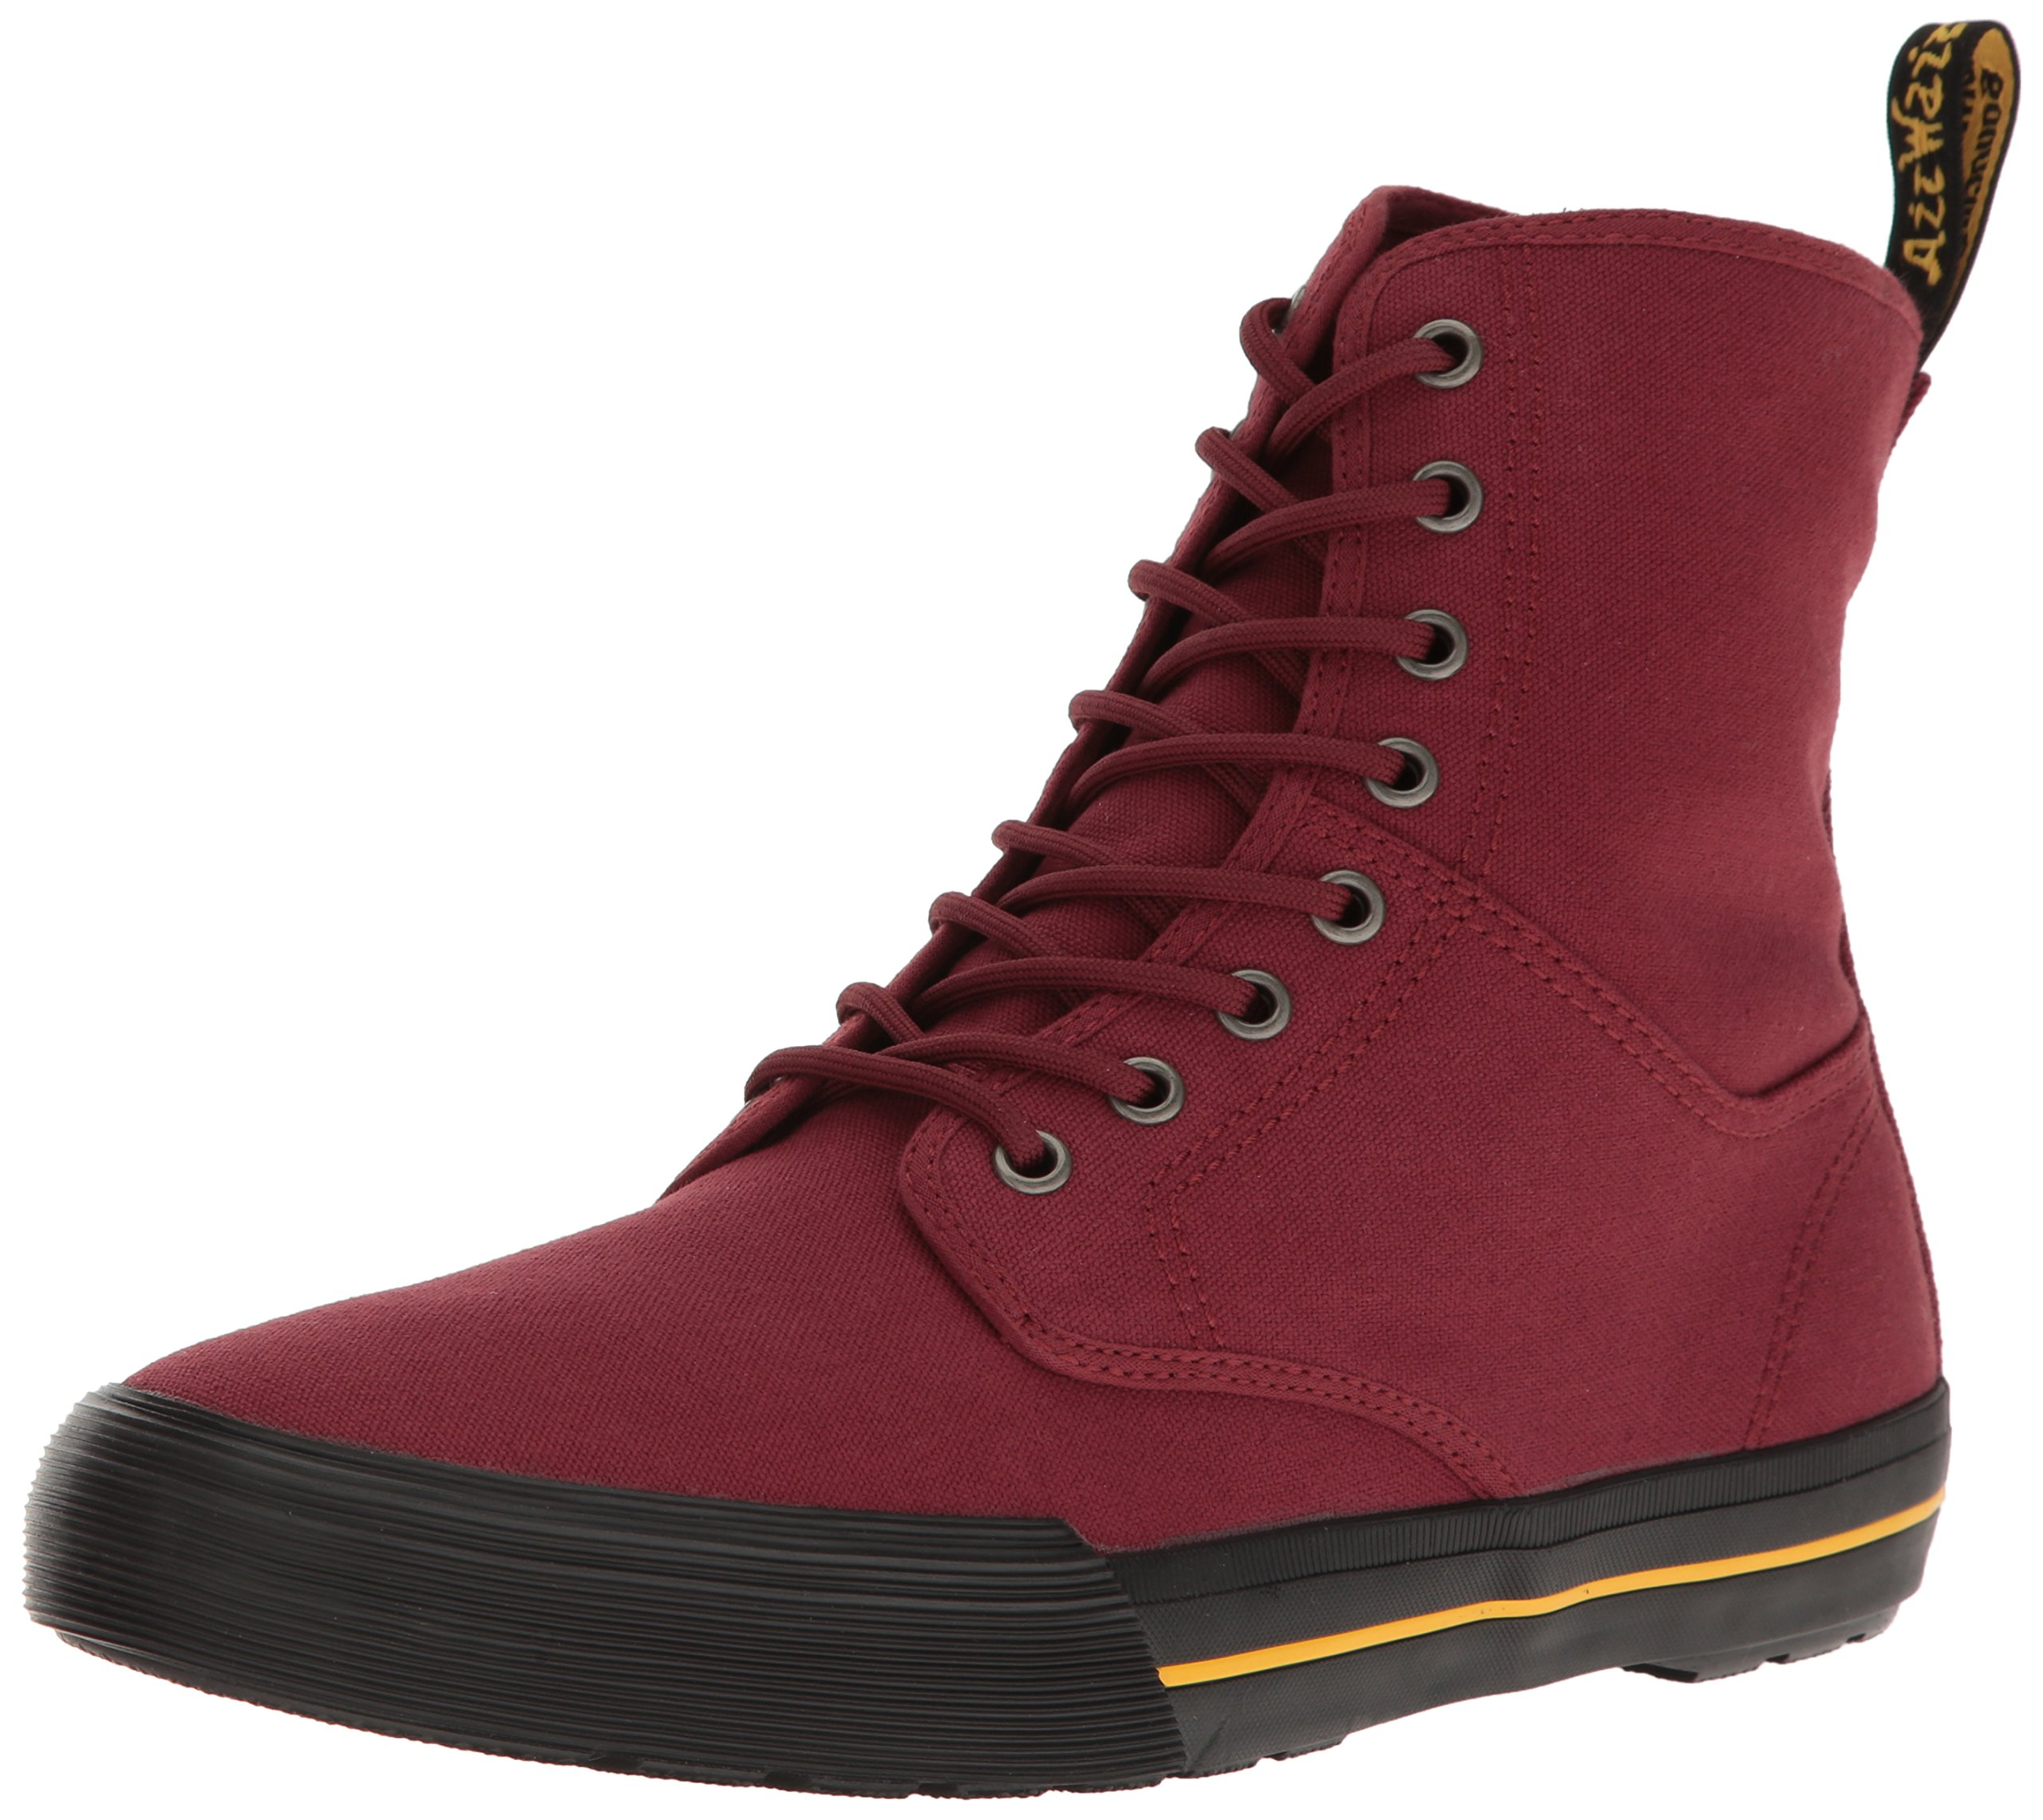 Dr. Martens Men's Winsted Chukka Boot, Cherry Red, 9 UK/10 M US